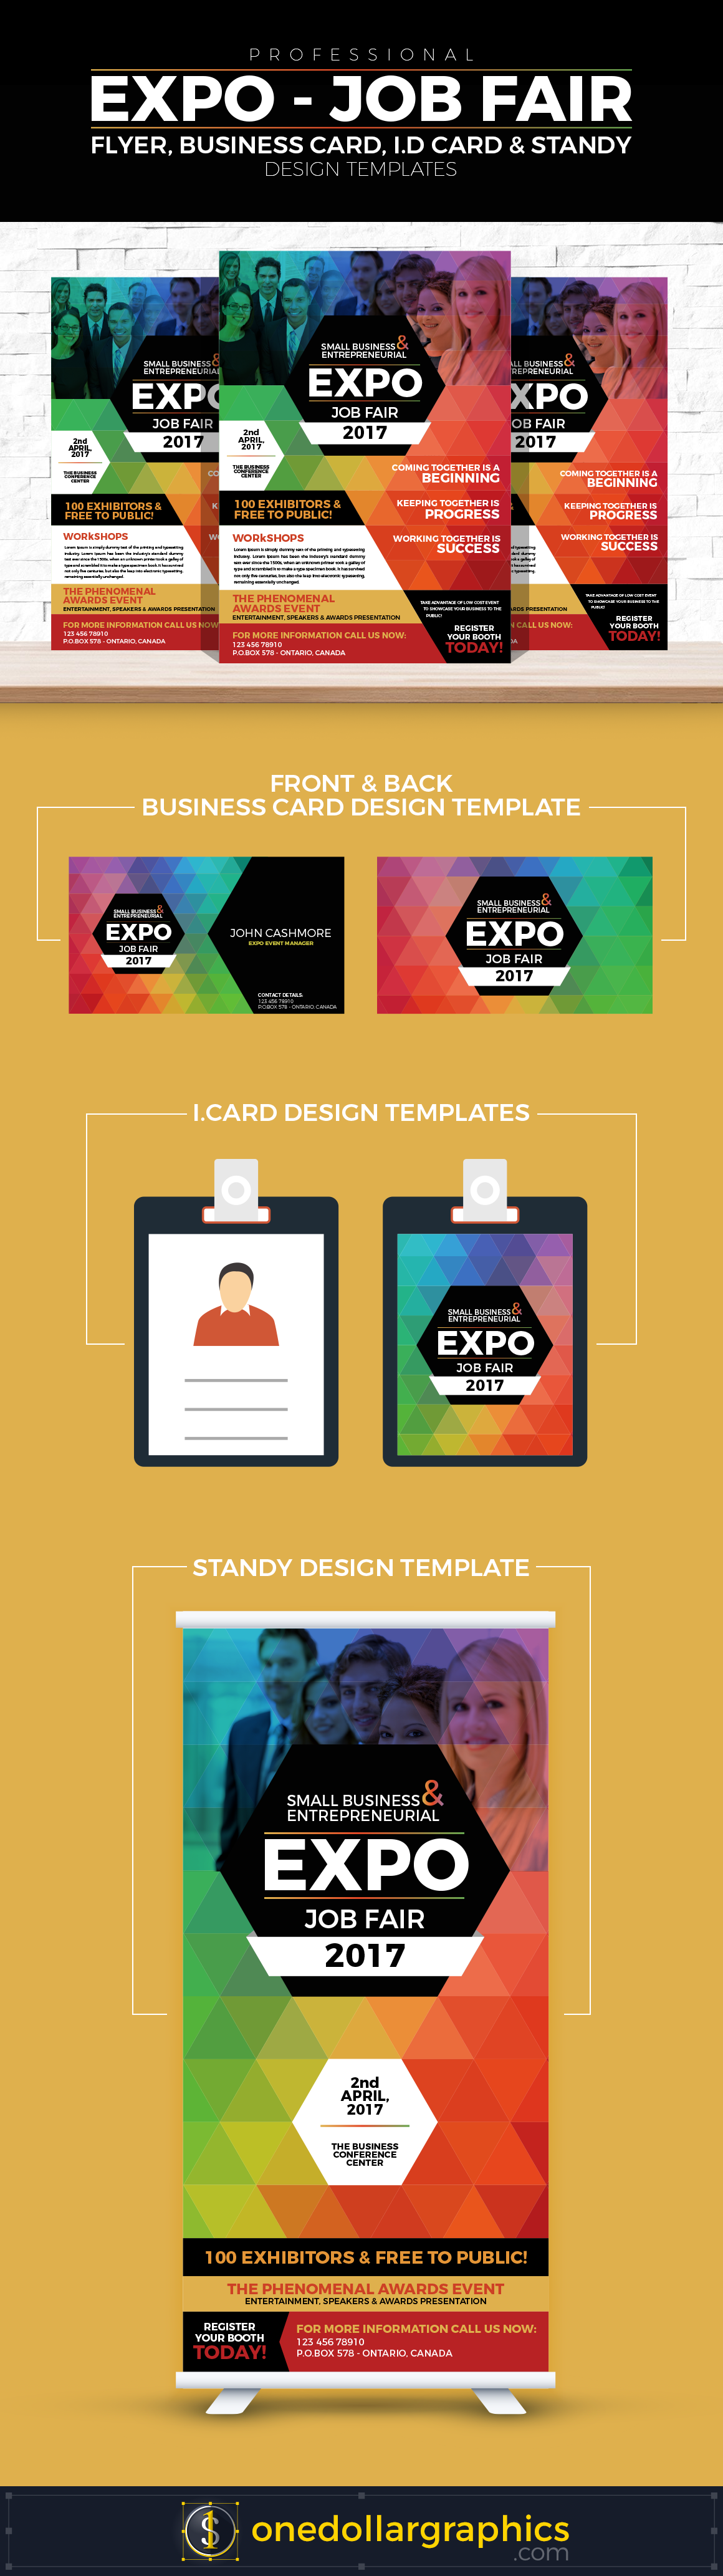 professional expo job fair flyer business card i d card standy